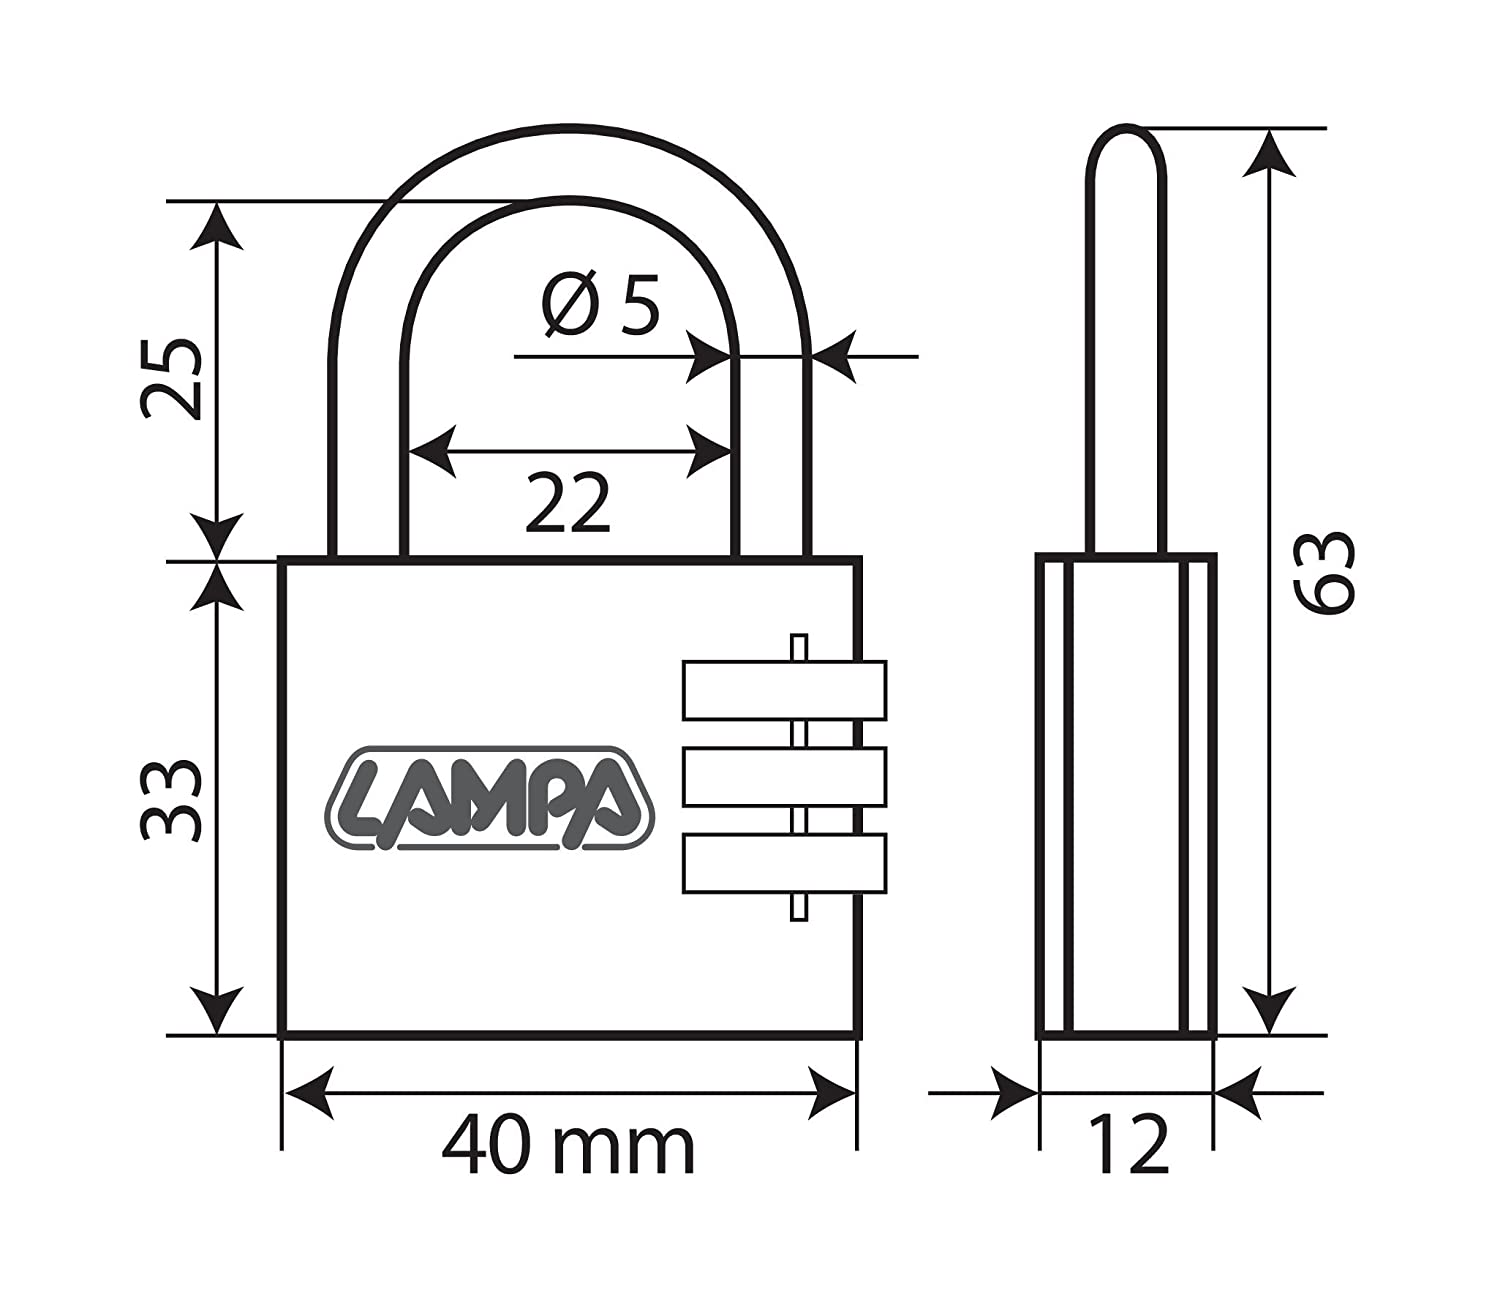 40 mm Lampa 65432 Brass Padlock with Variable Combinations